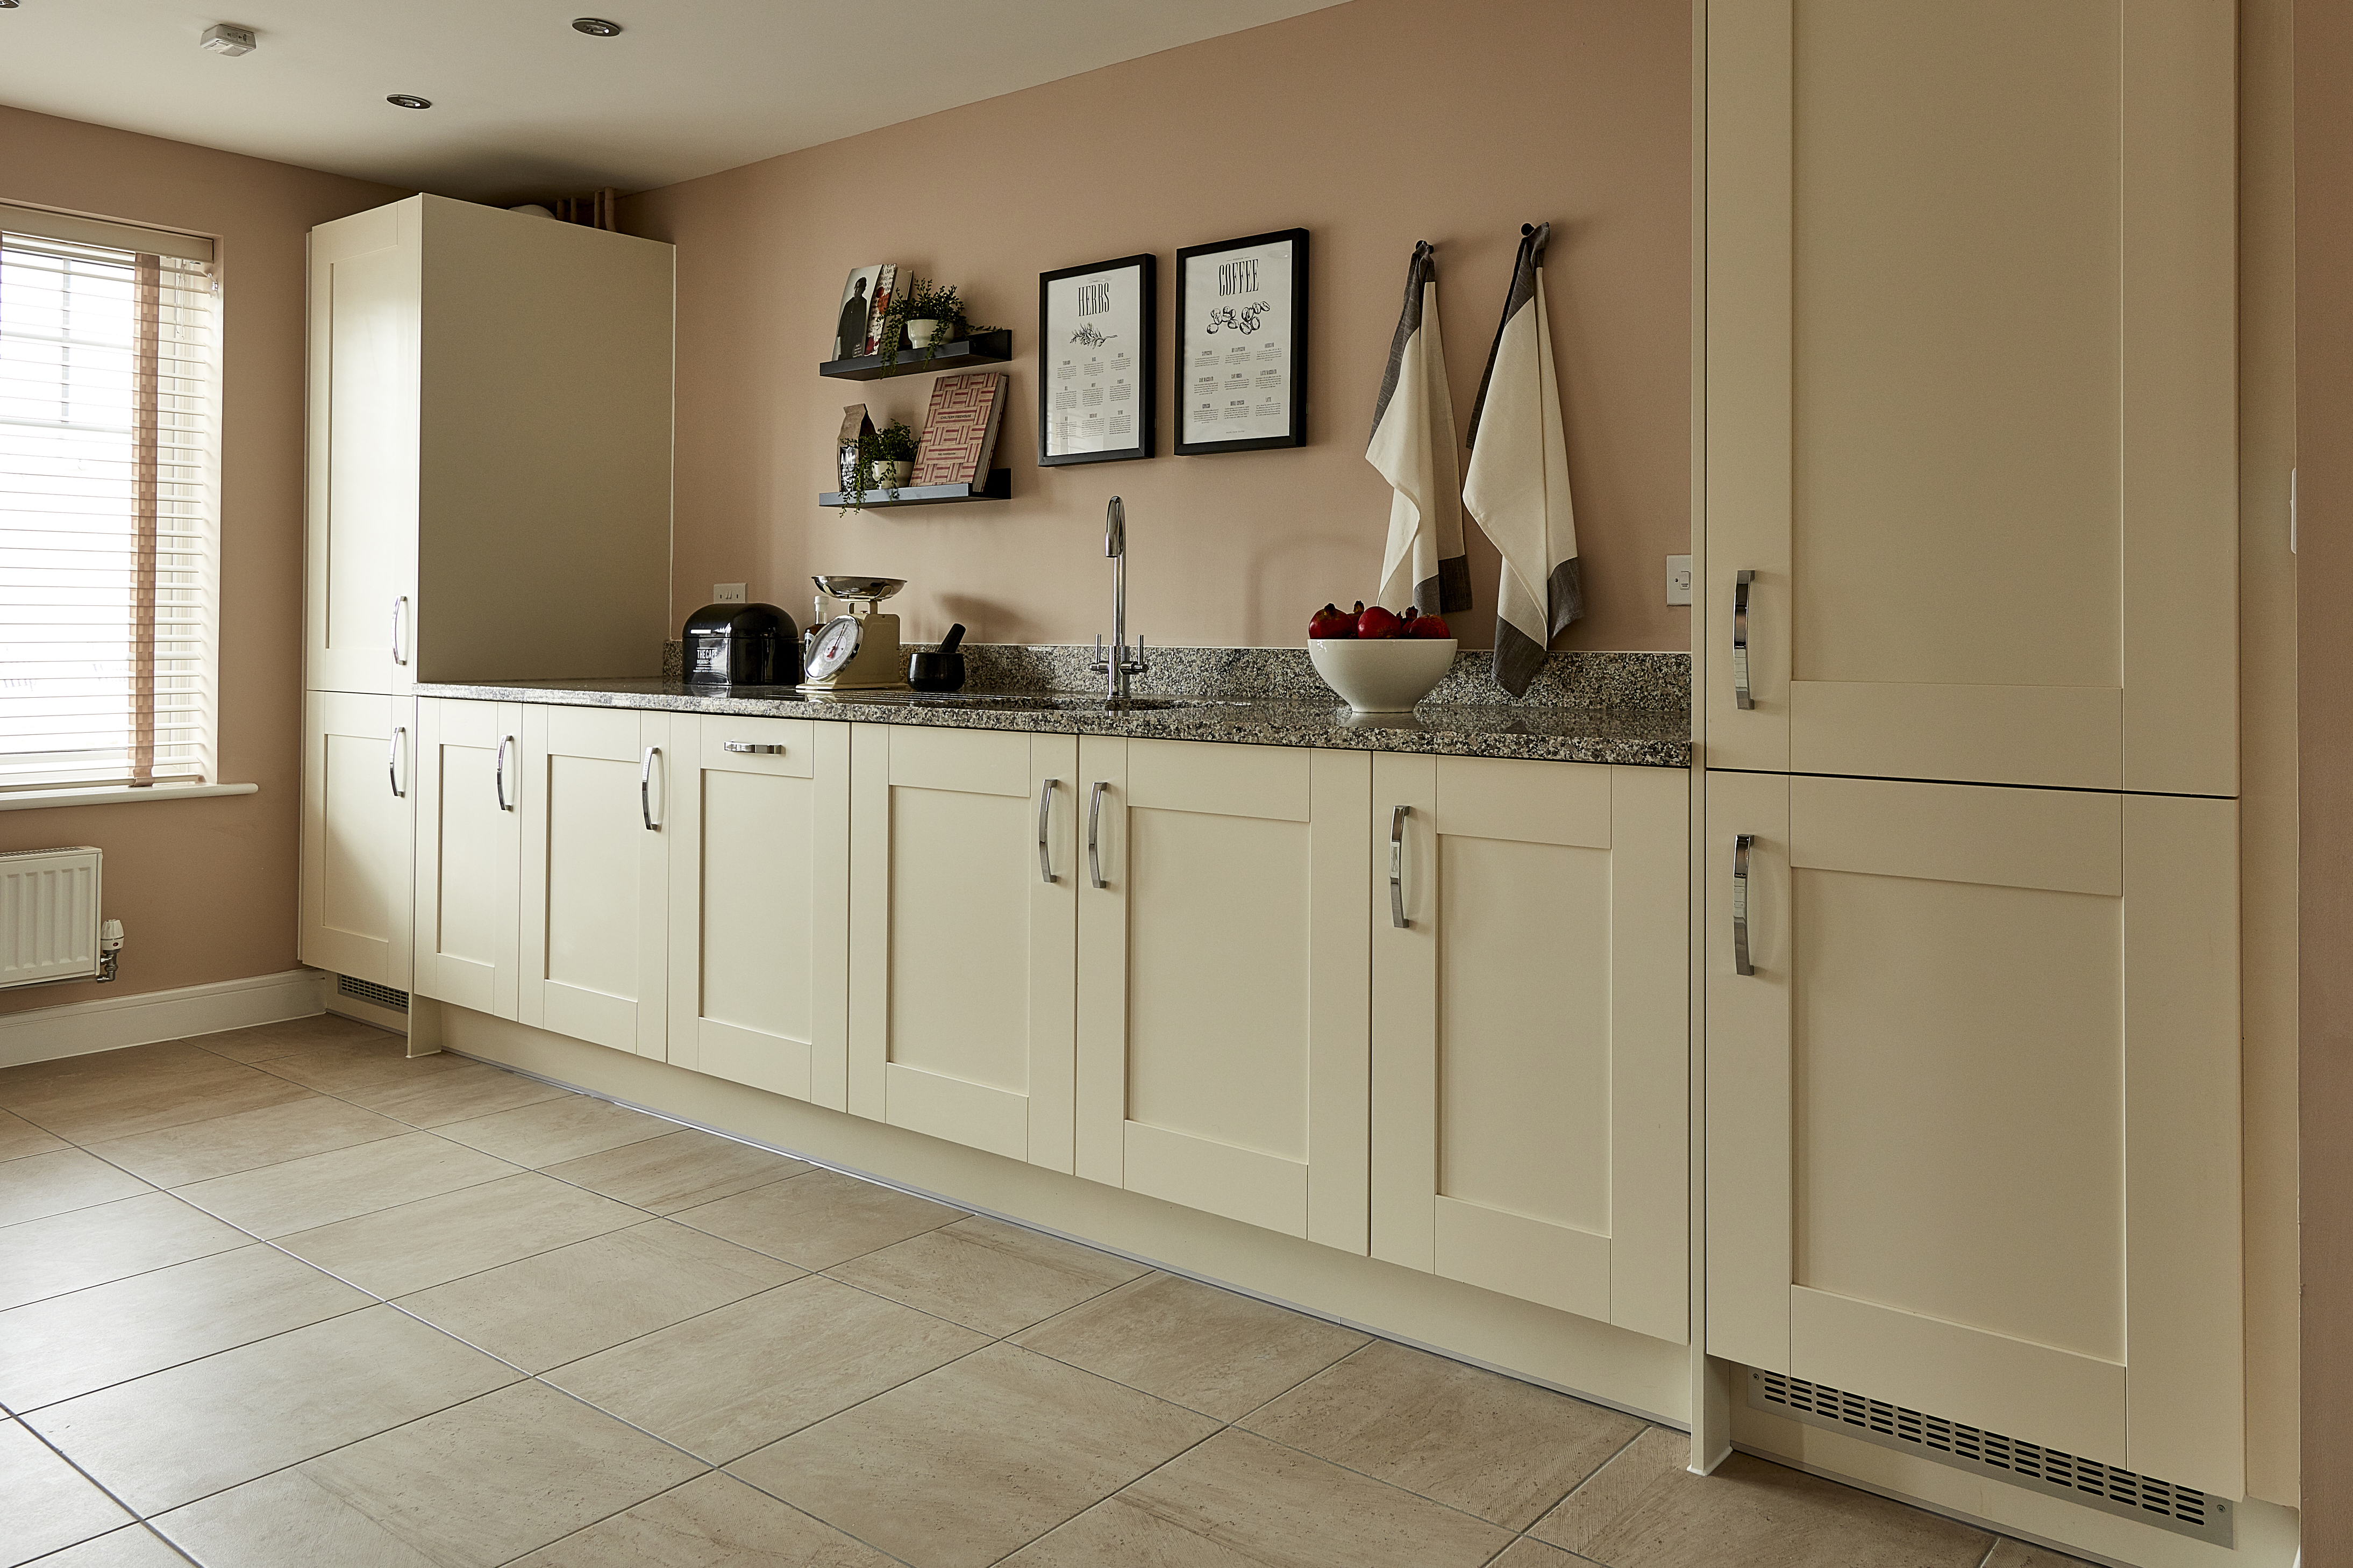 TW OX Thornbury Green_Eynsham_NA45_Marford_Kitchen